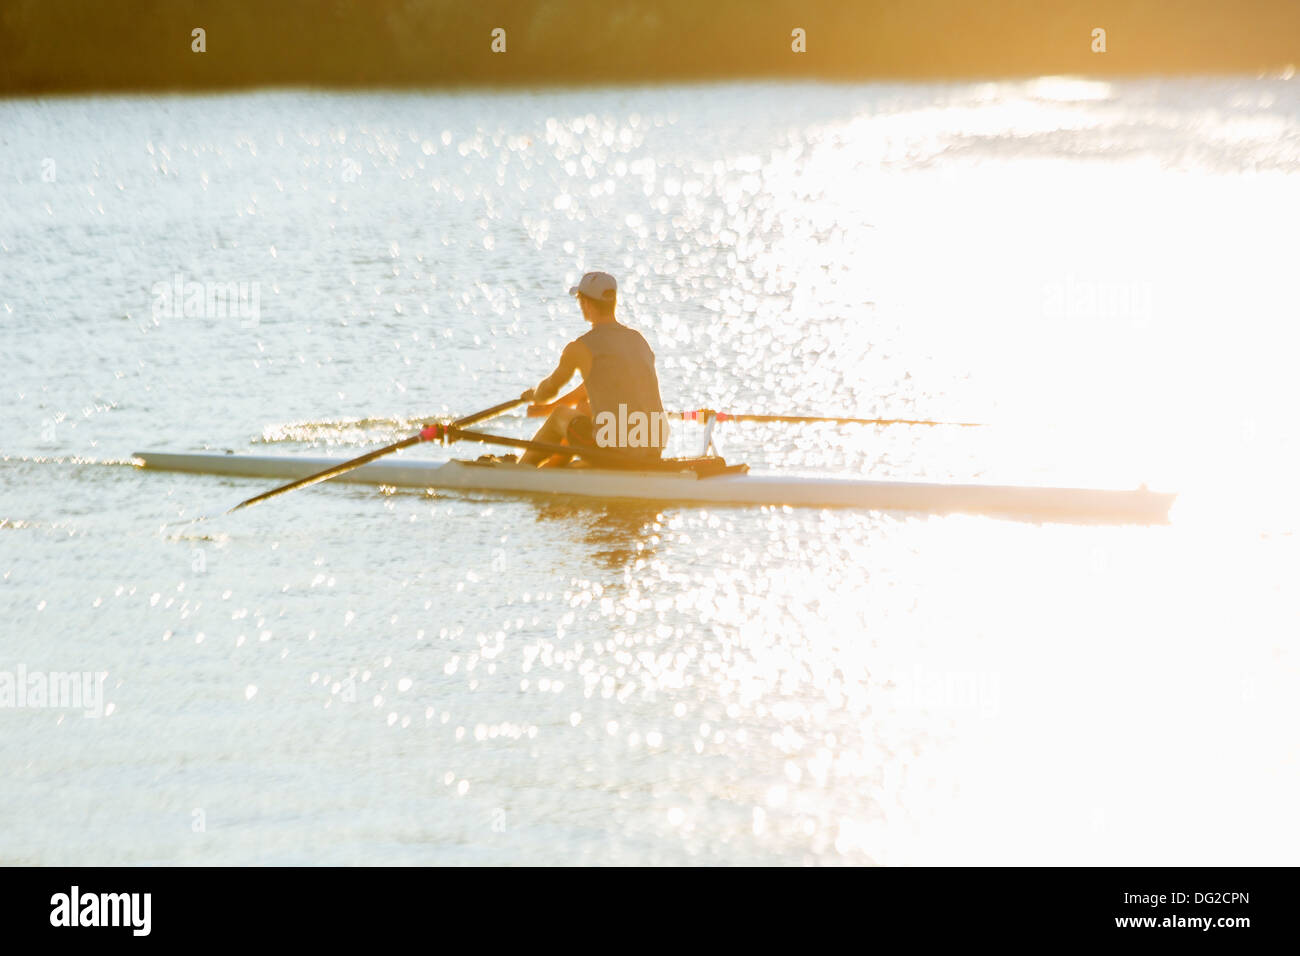 Canada,Ontario,Saint Catharines, Royal Henley Regatta Single, canottaggio Immagini Stock